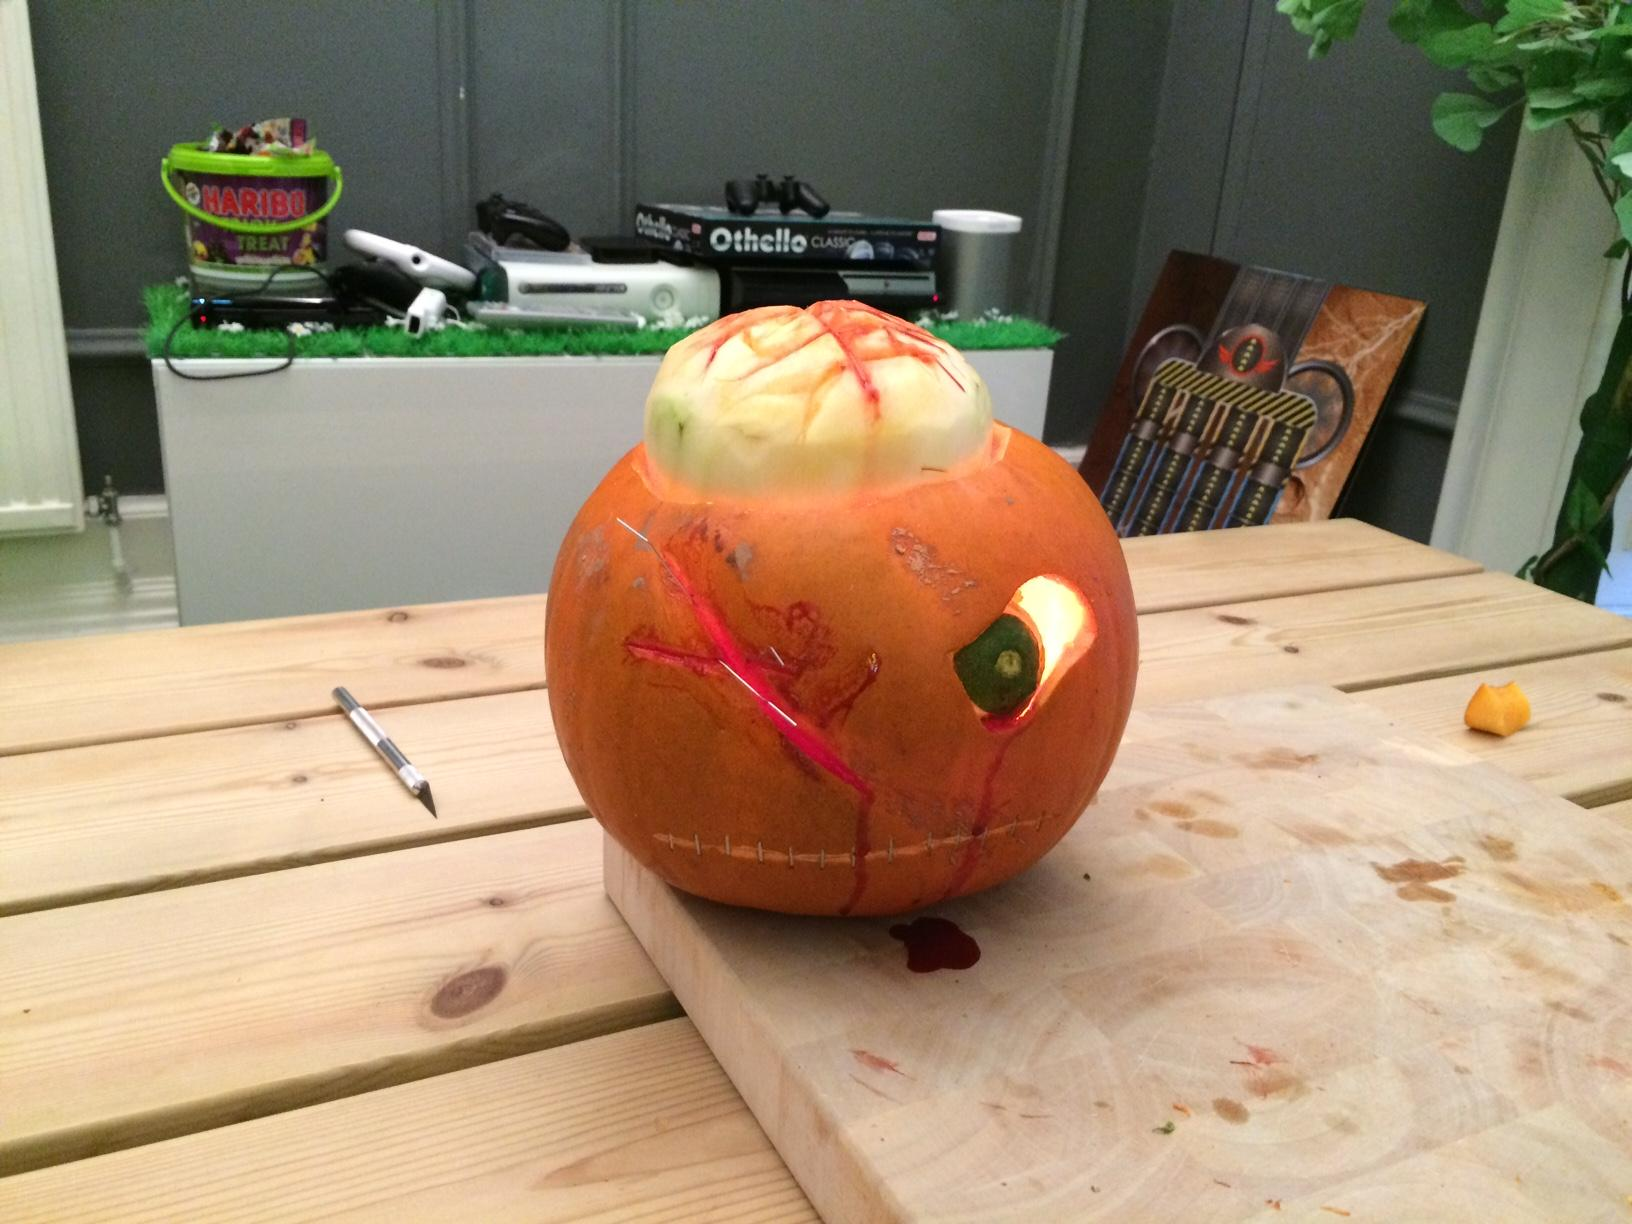 Some Chunk pumpkin carving - Happy Halloween everyone! http://t.co/3zVbwKKuzl